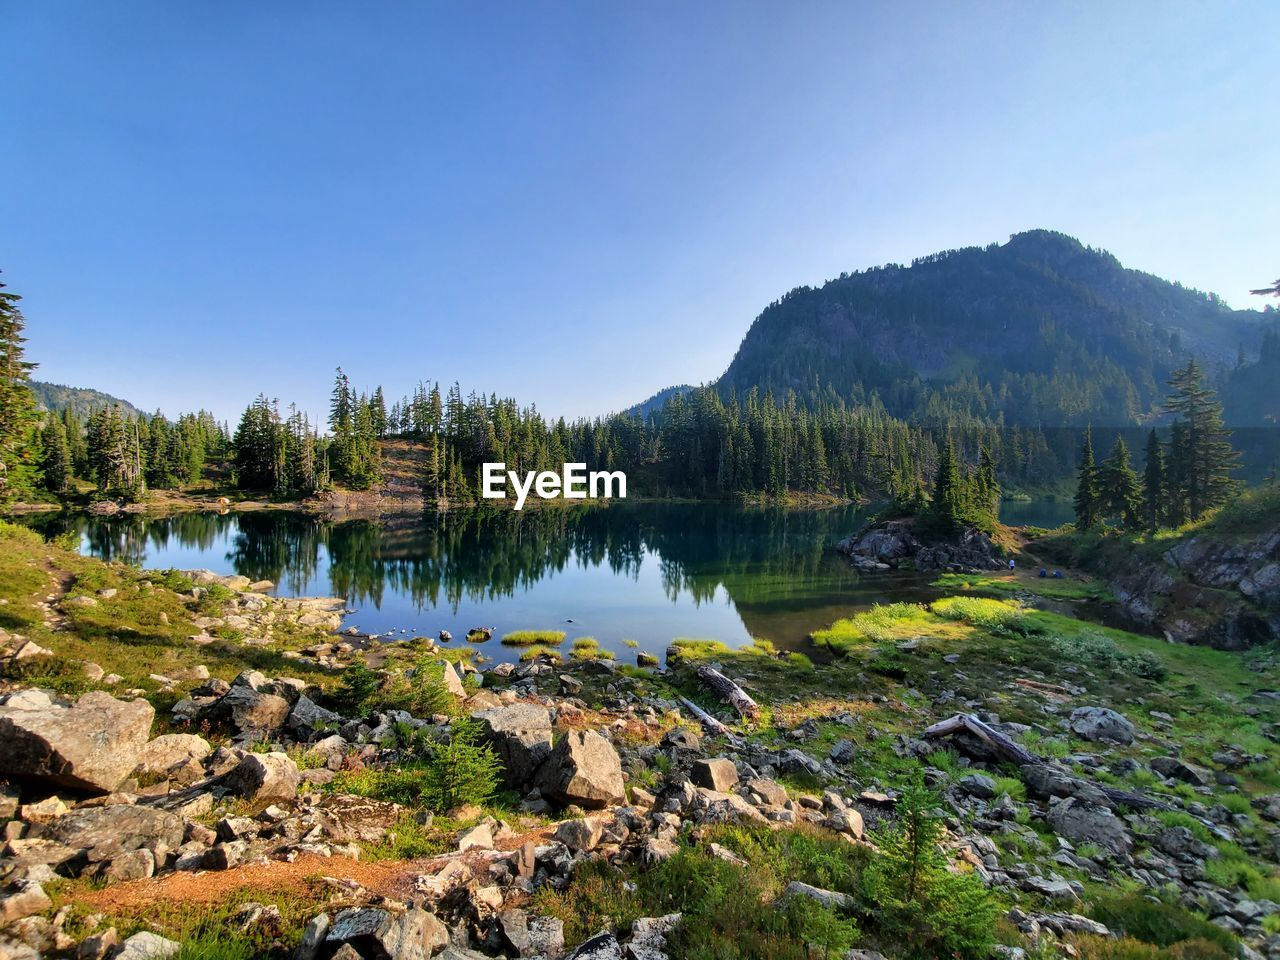 SCENIC VIEW OF LAKE AMIDST TREES AGAINST CLEAR SKY